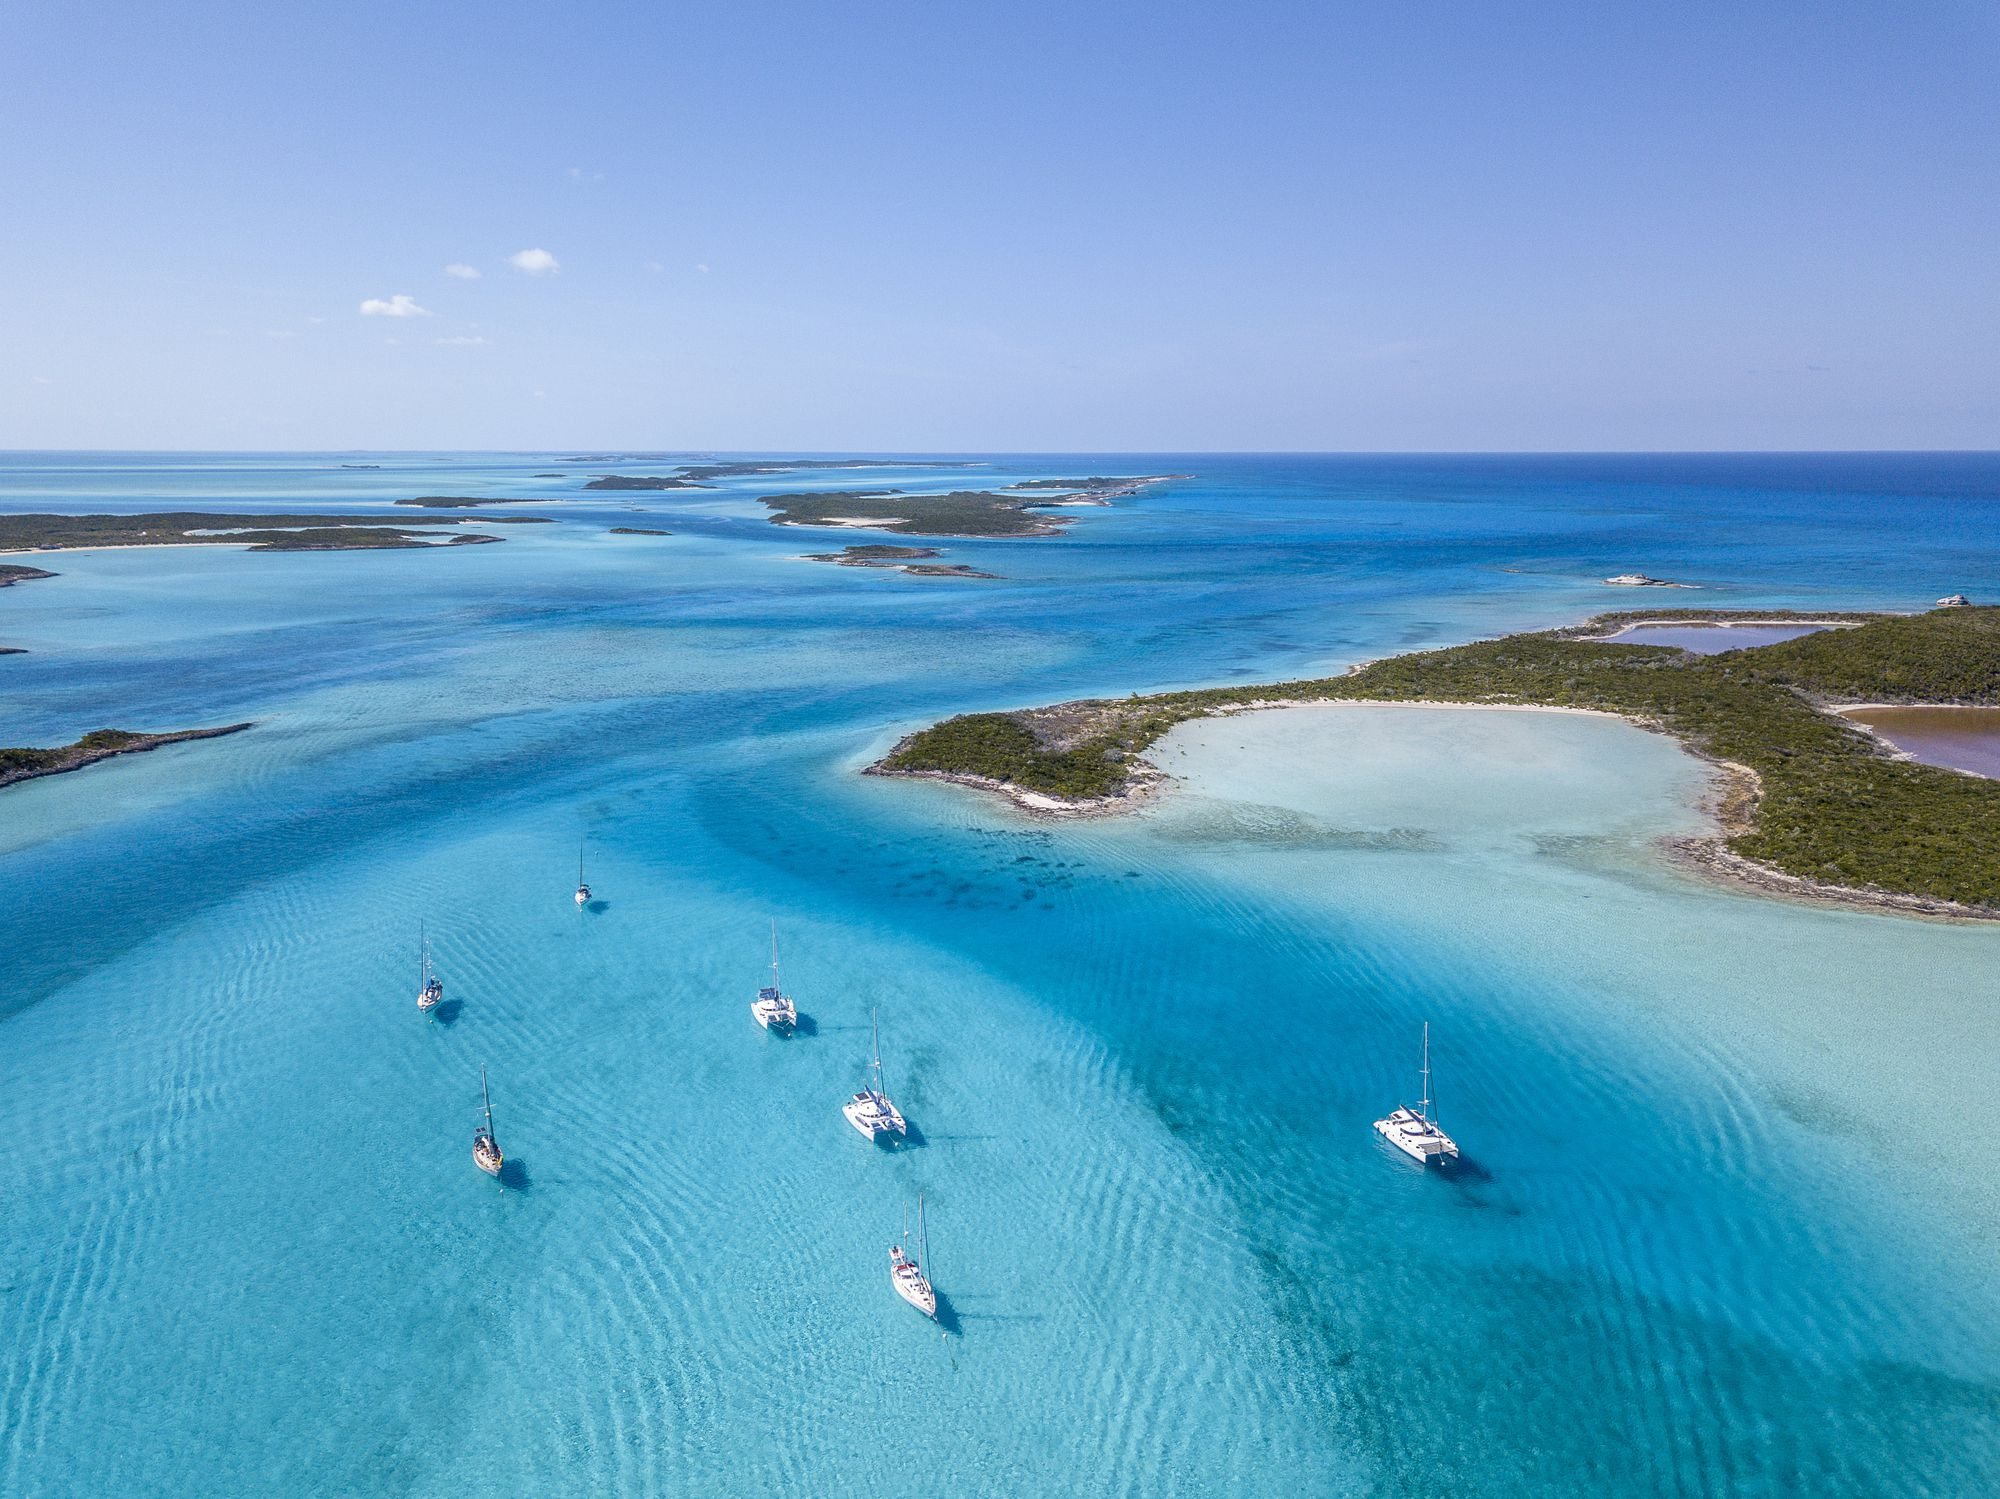 The Best Time To Visit The Bahamas